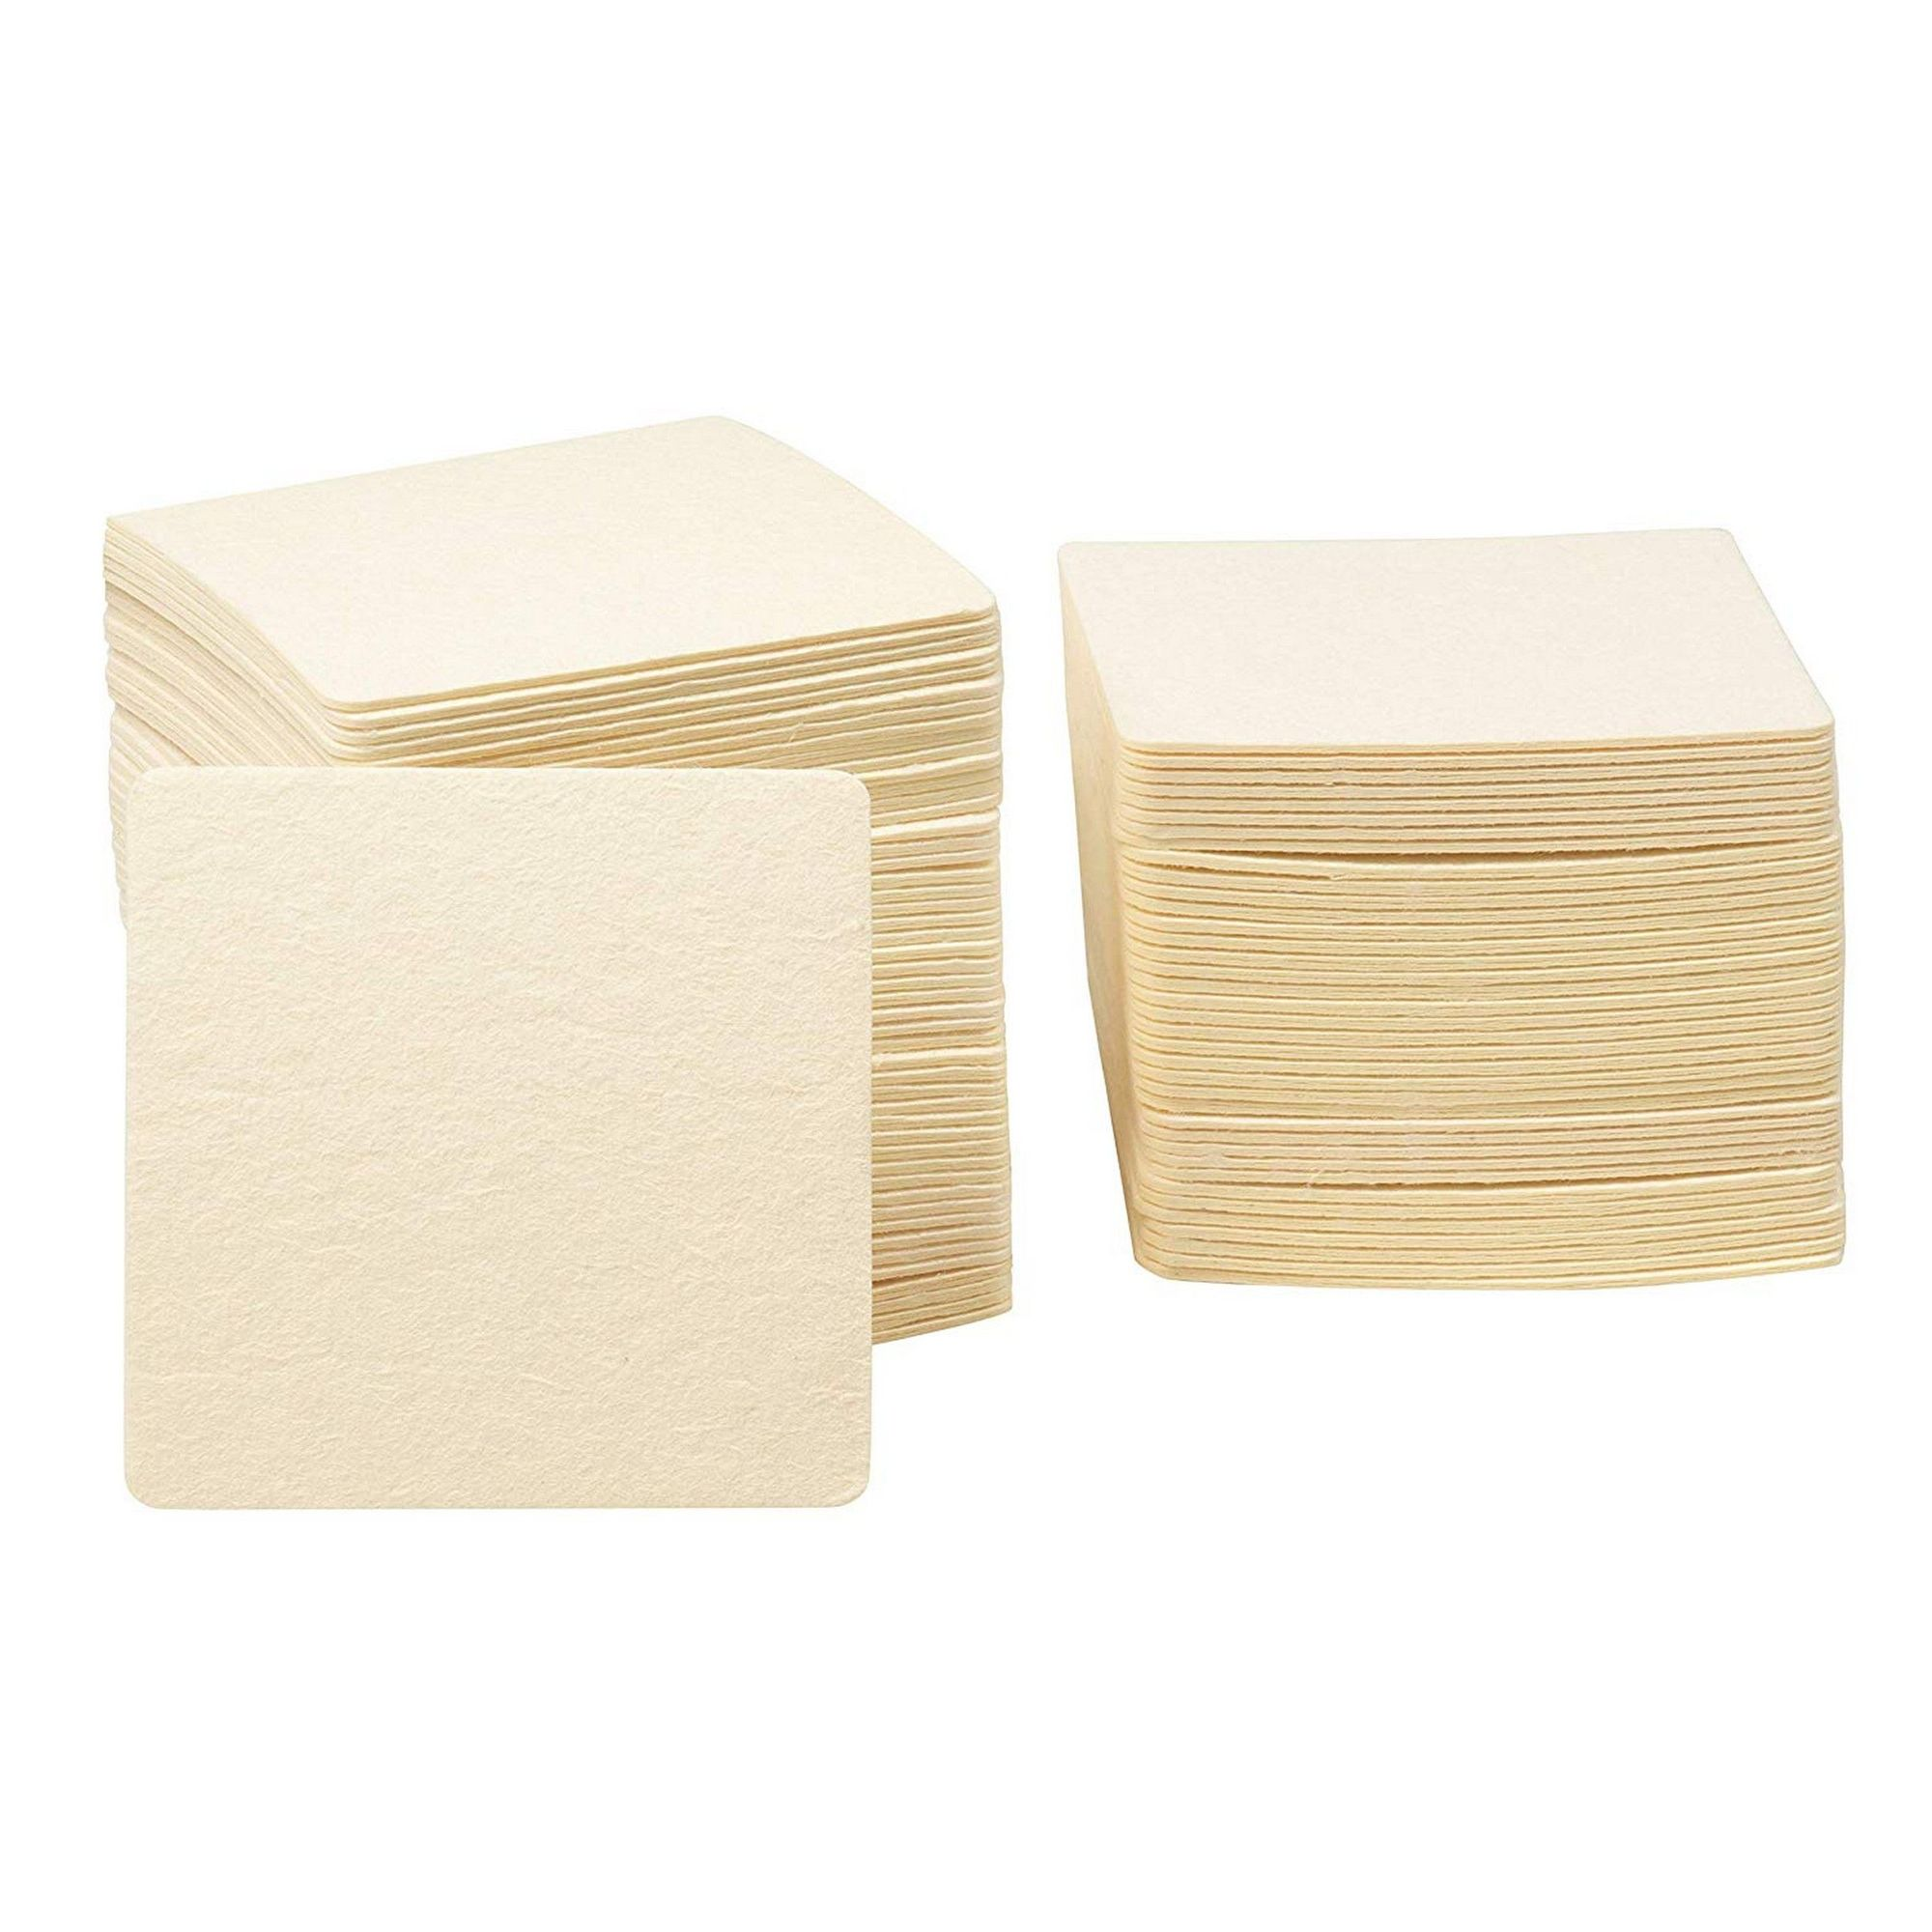 Pack of 500 Paper Coasters